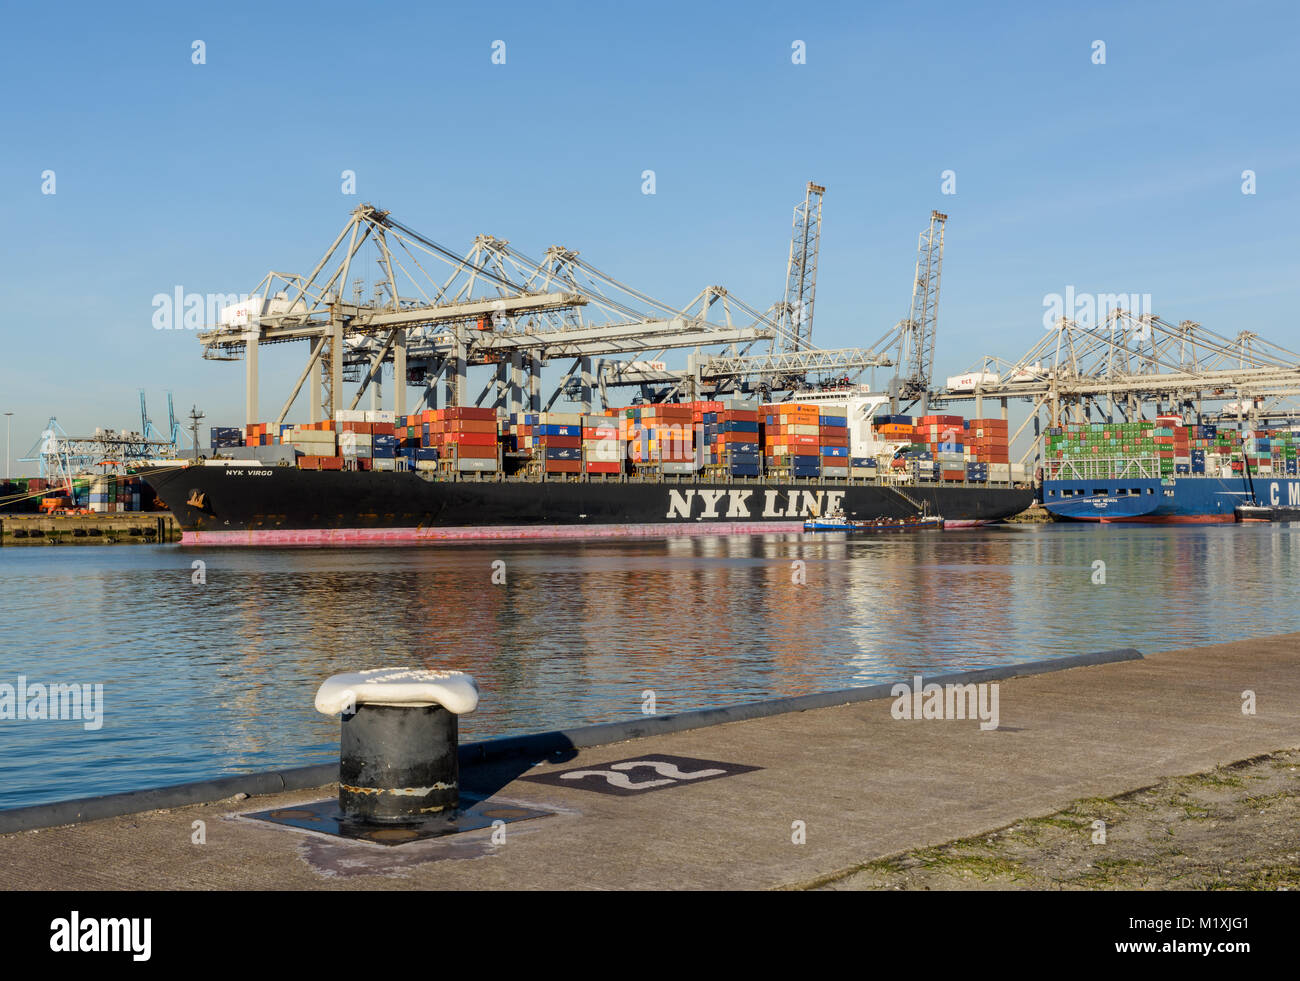 ROTTERDAM, THE NETHERLANDS - FEBRUARY 16, 2016: The container ship NYK VIRGO of the NYK Line is moored at the ECT - Stock Image